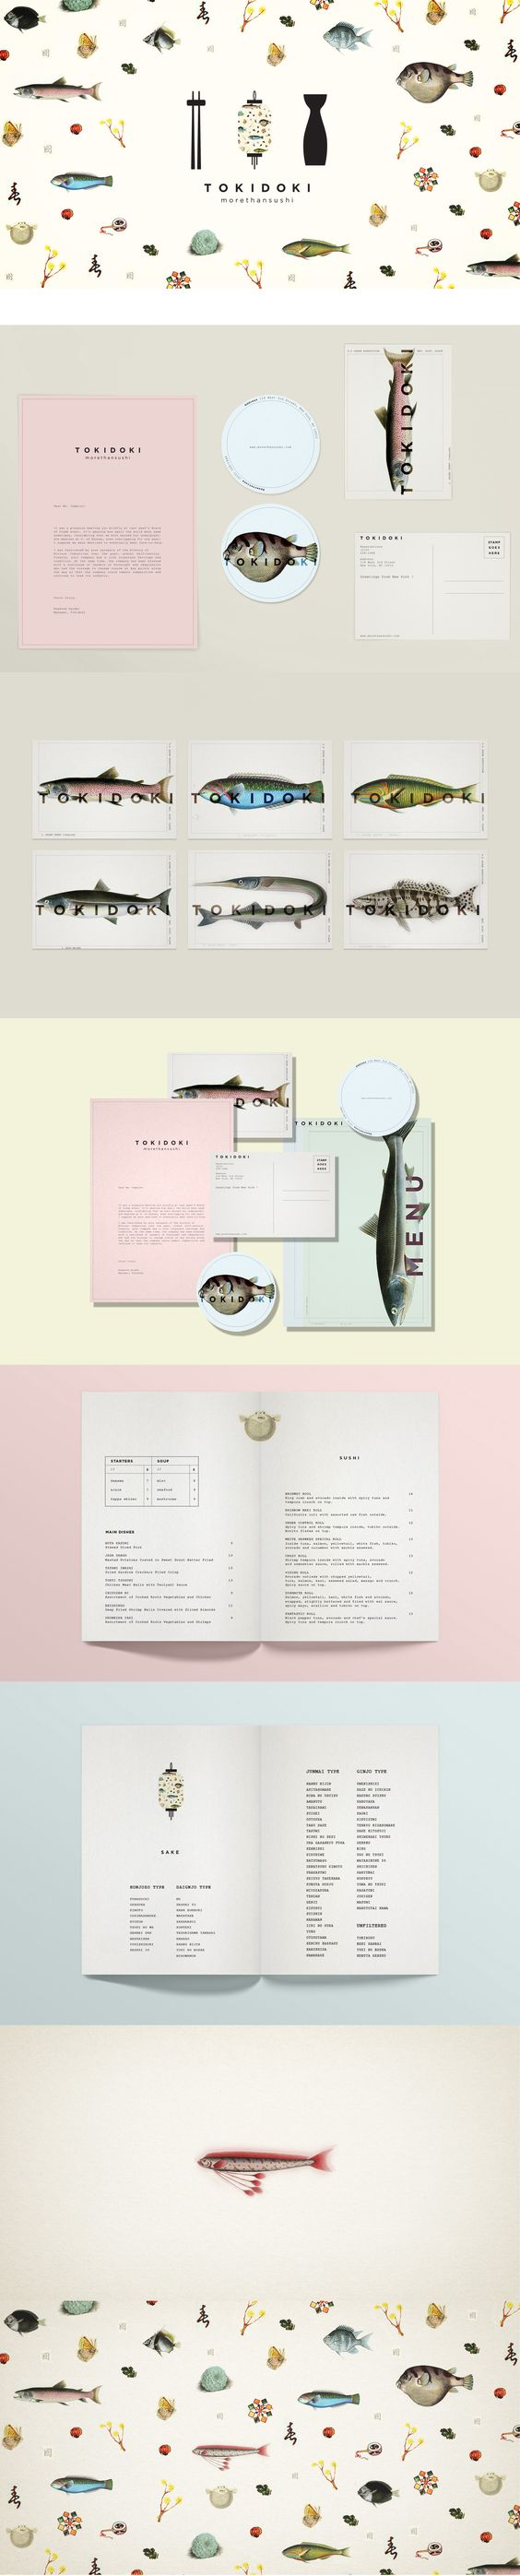 Branding, Art Direction & Graphic Design _Japanese Restaurant Corporate Design #corporatedesign